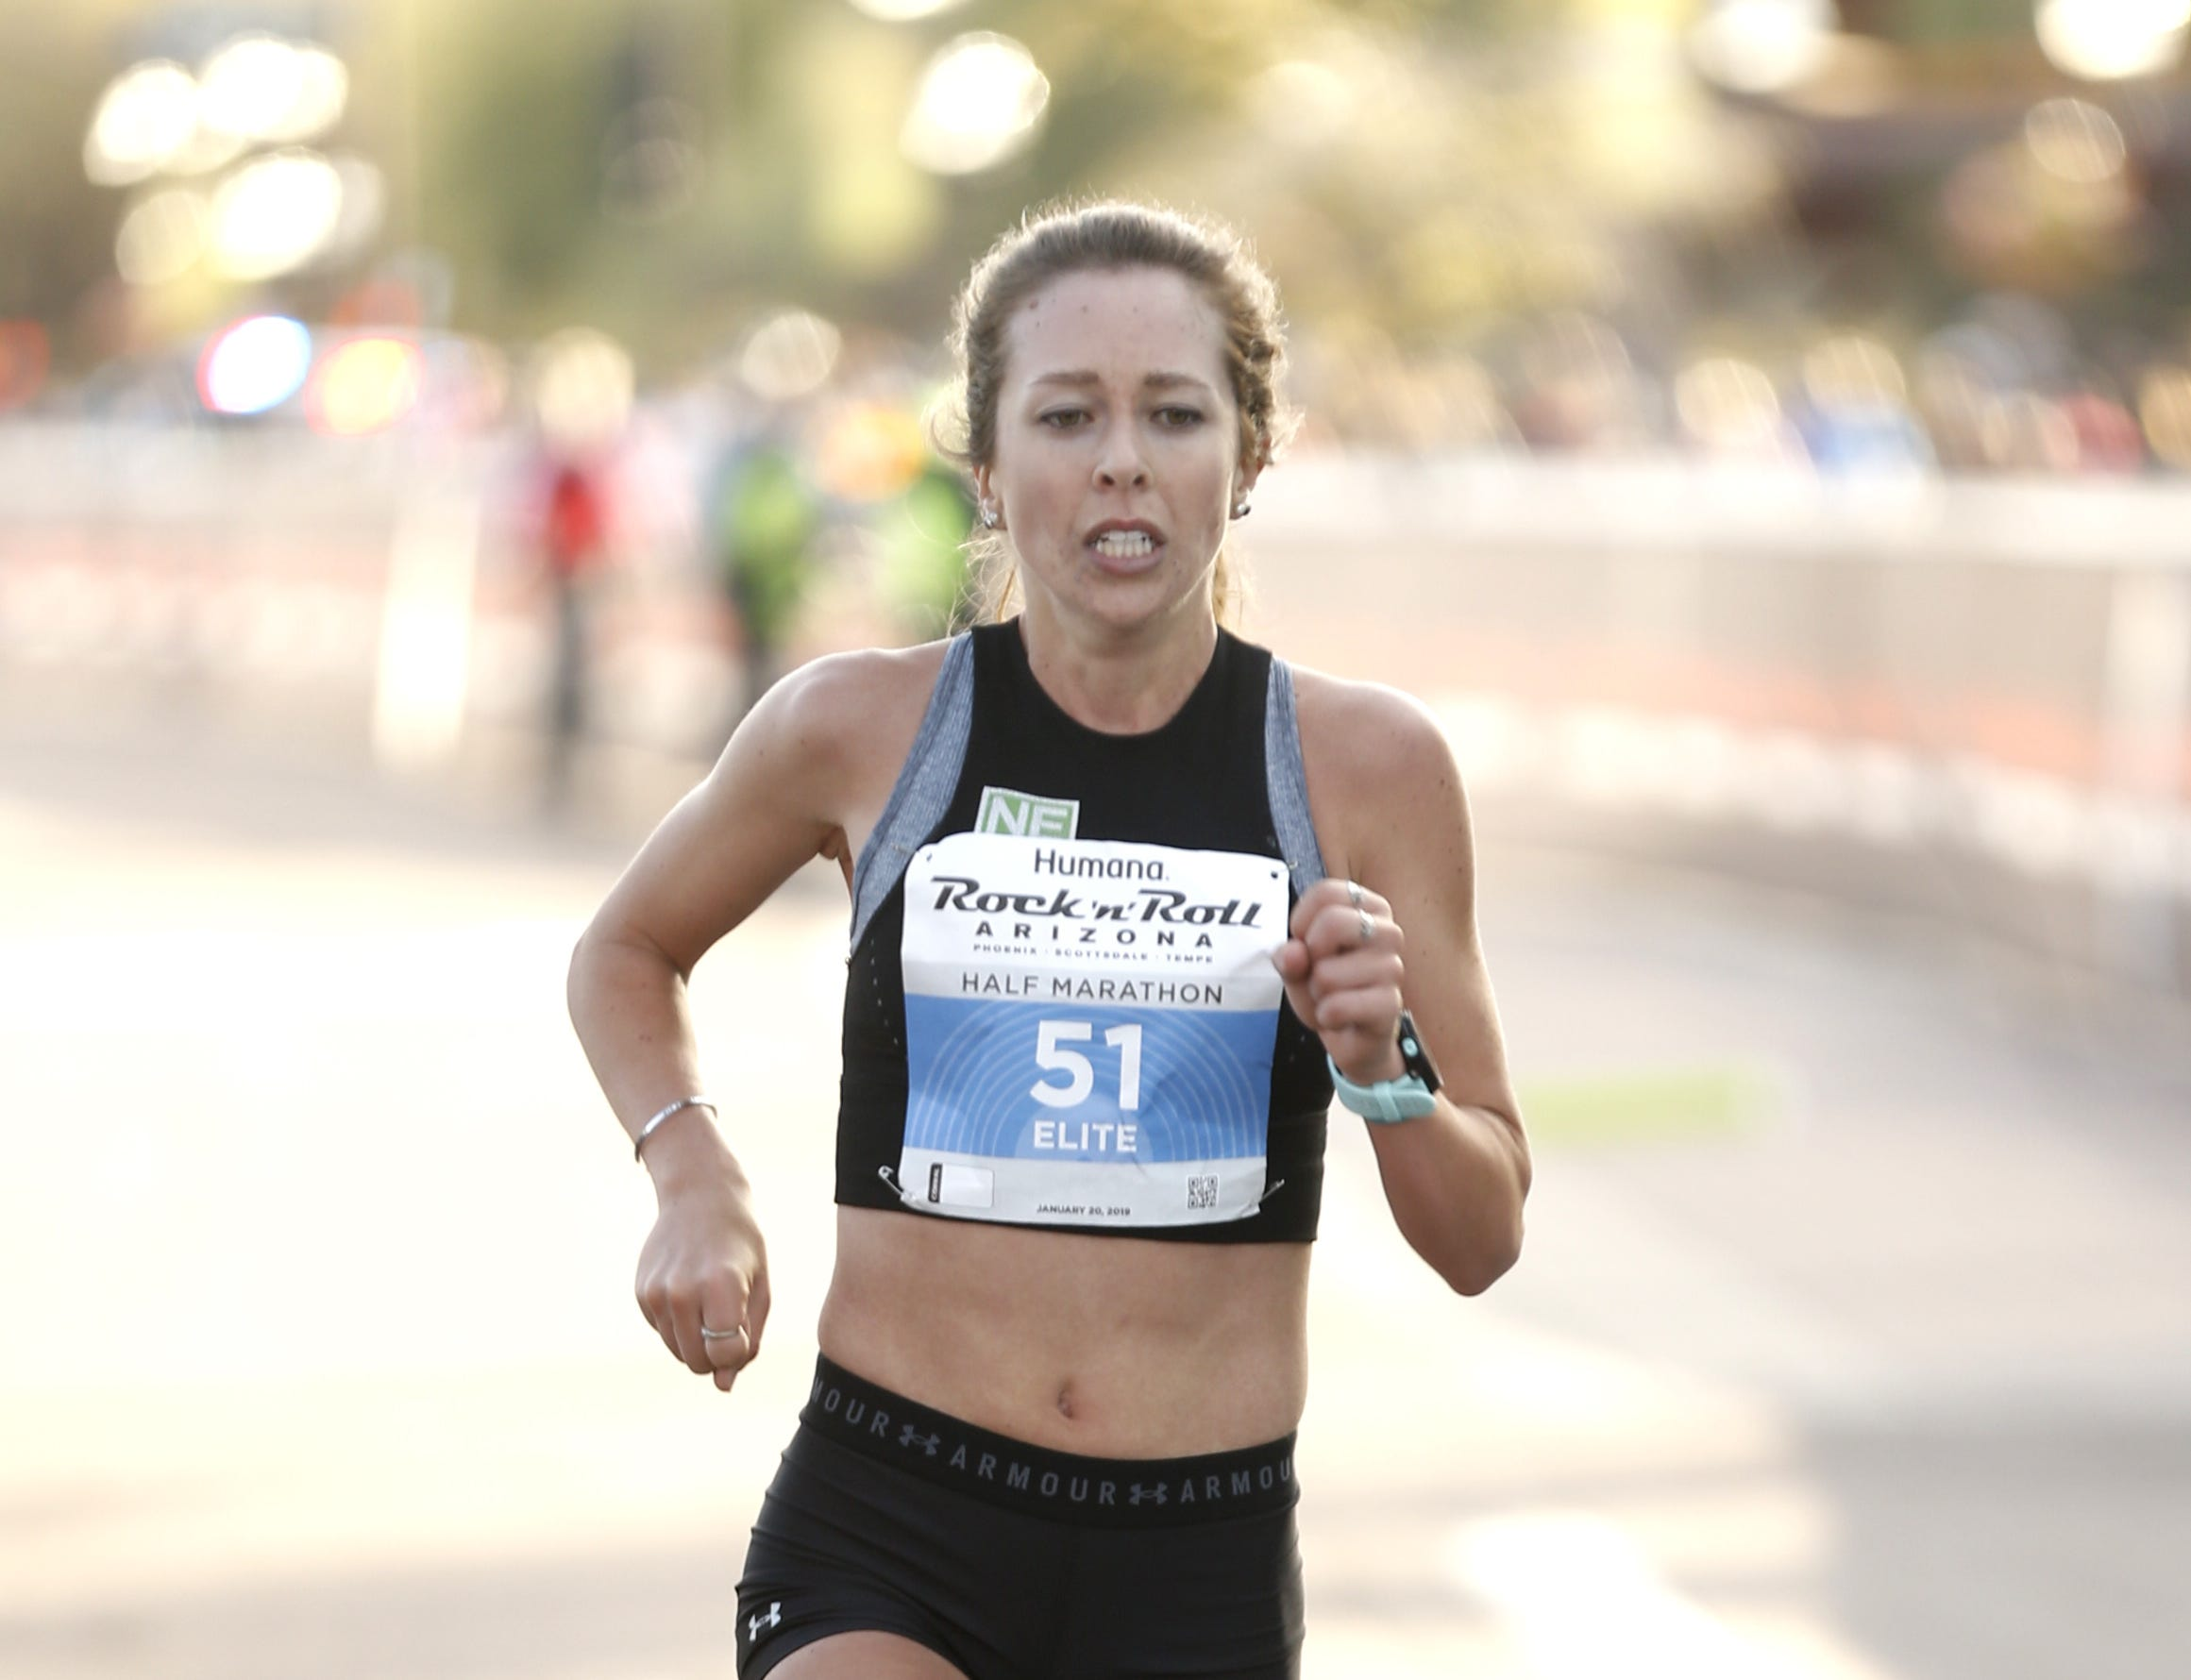 Dylan Hassett places second during the Rock 'n' Roll half-marathon in Tempe on Jan. 20, 2019.